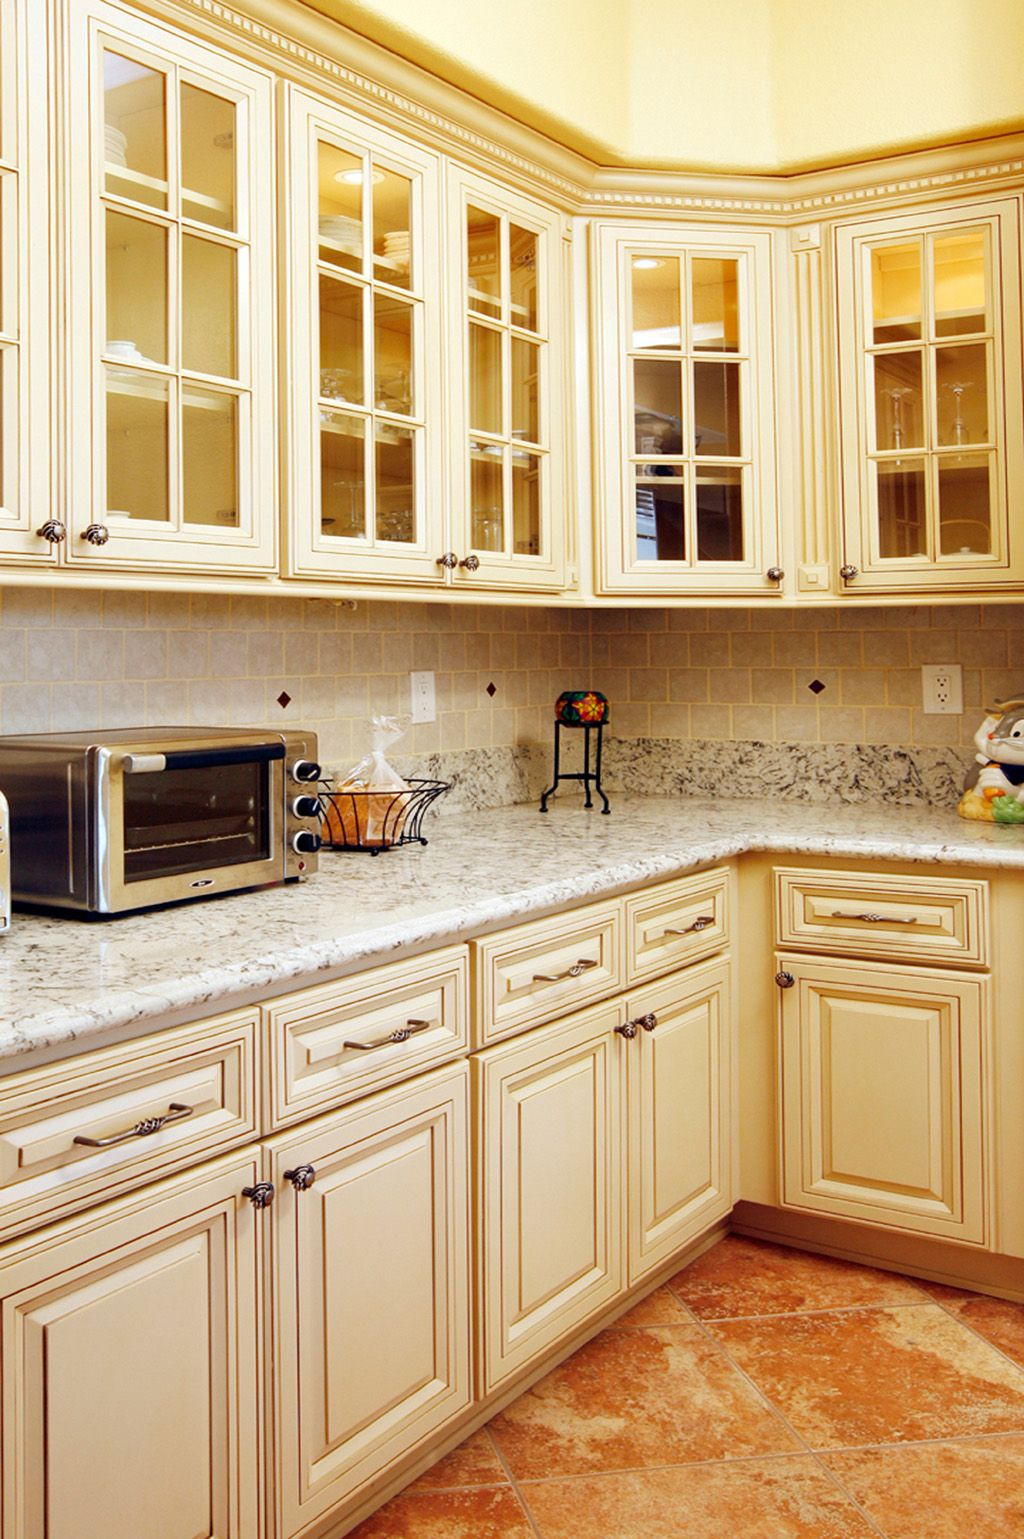 North American Maple Antique White Glaze Kitchen Cabinets With